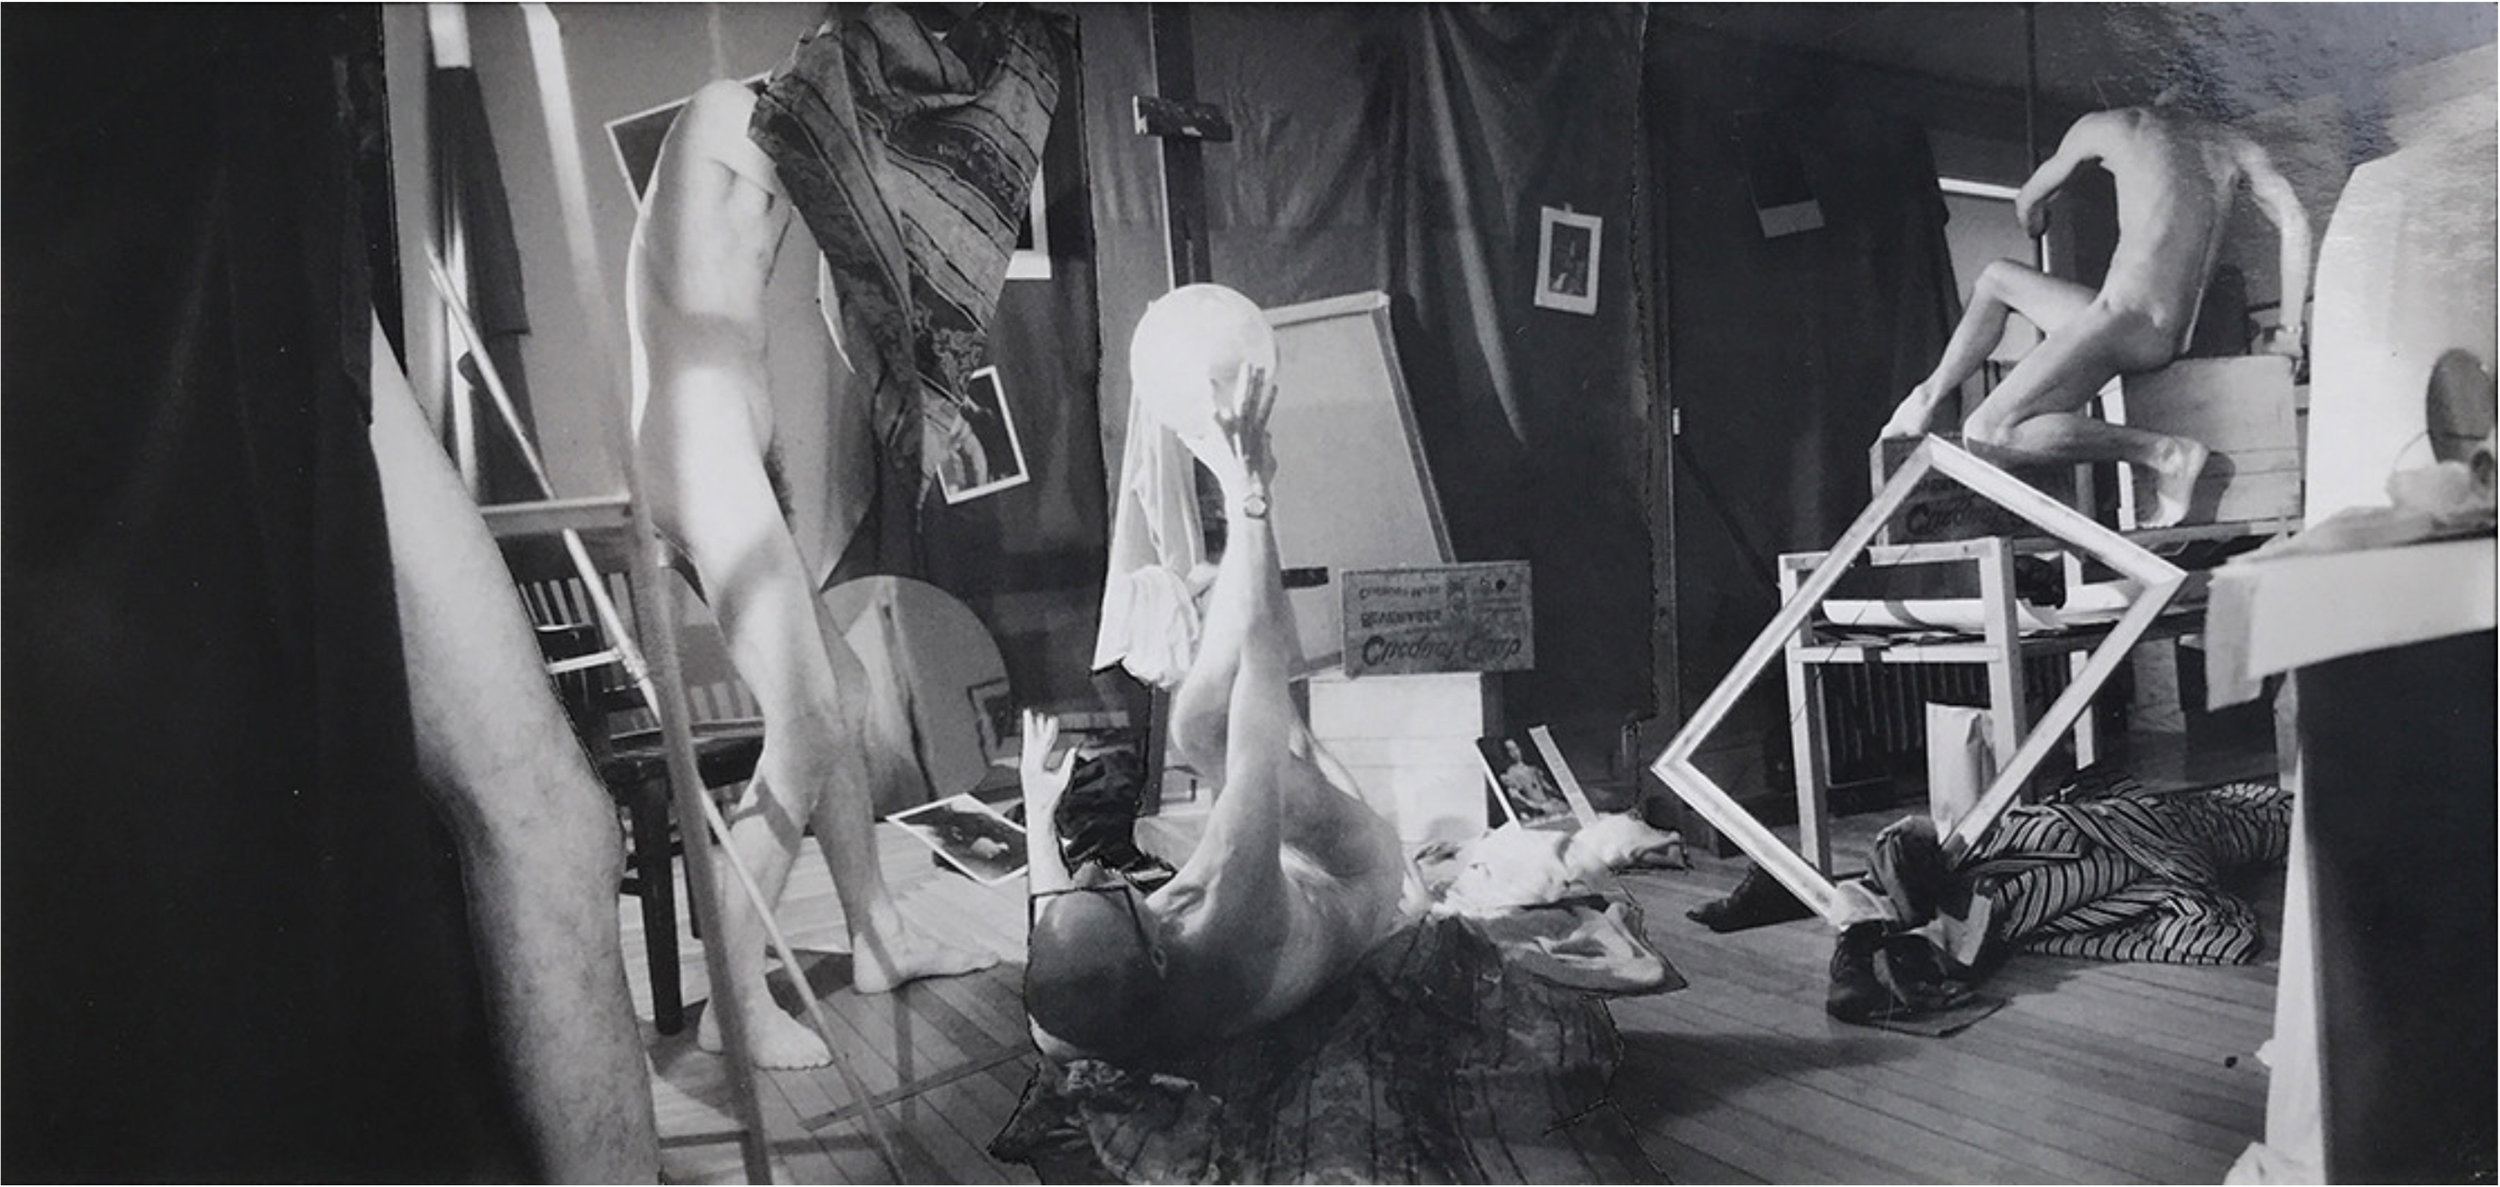 John O'Reilly  A Balancing Act , 1985  polaroid montage  3.70h x 7.70w in